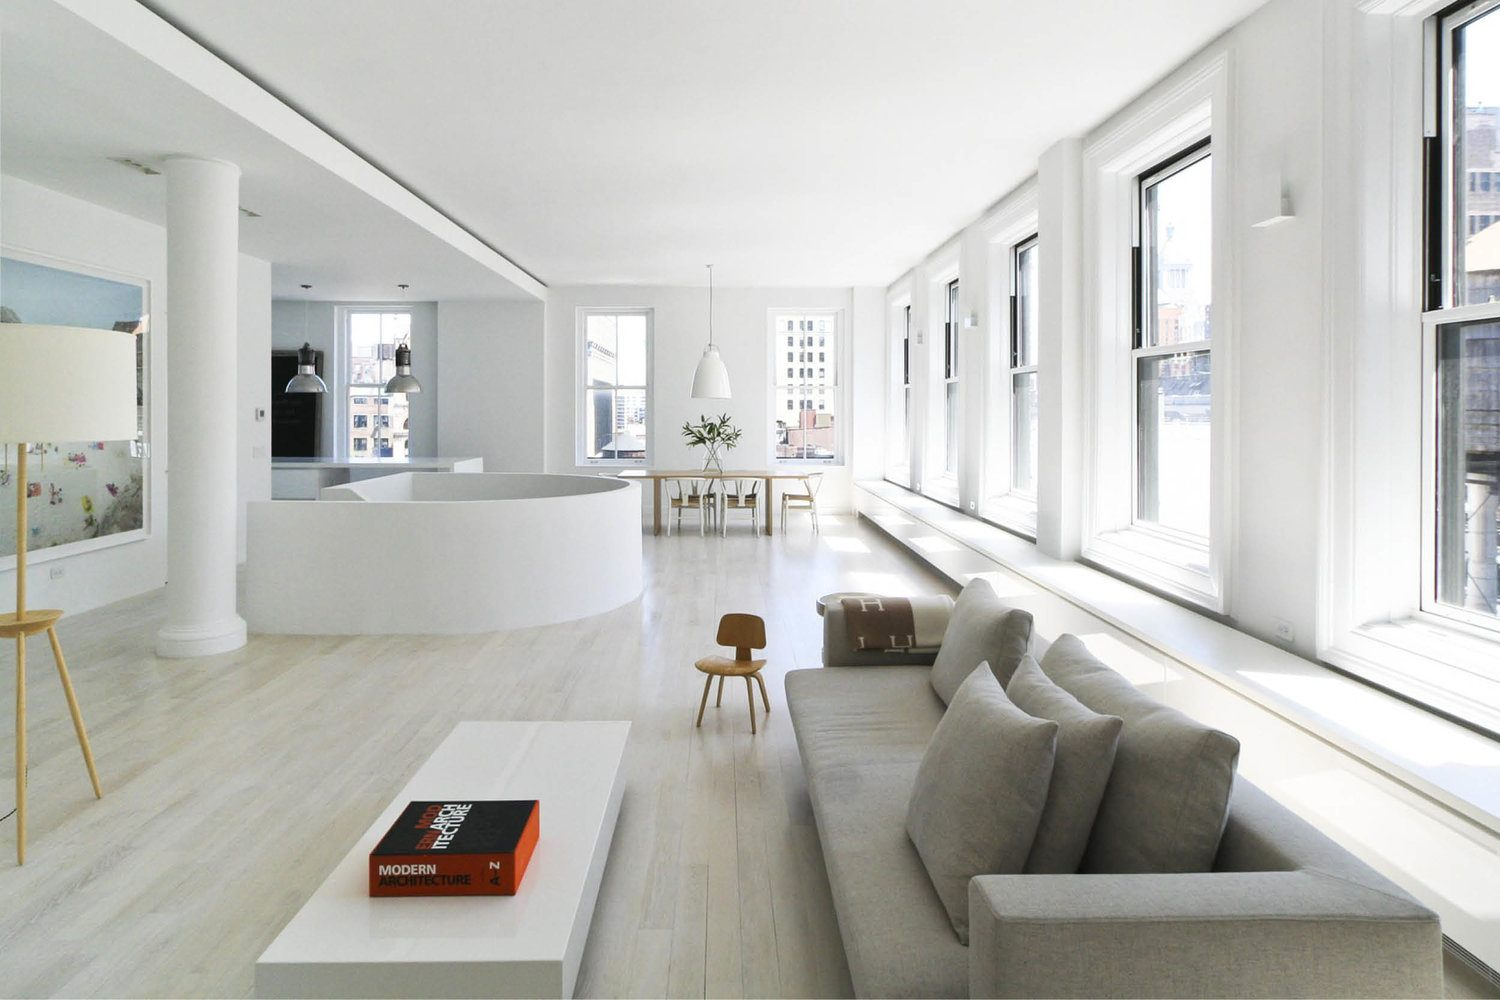 Resolution 4 Architecture Designed This White Bright Light And